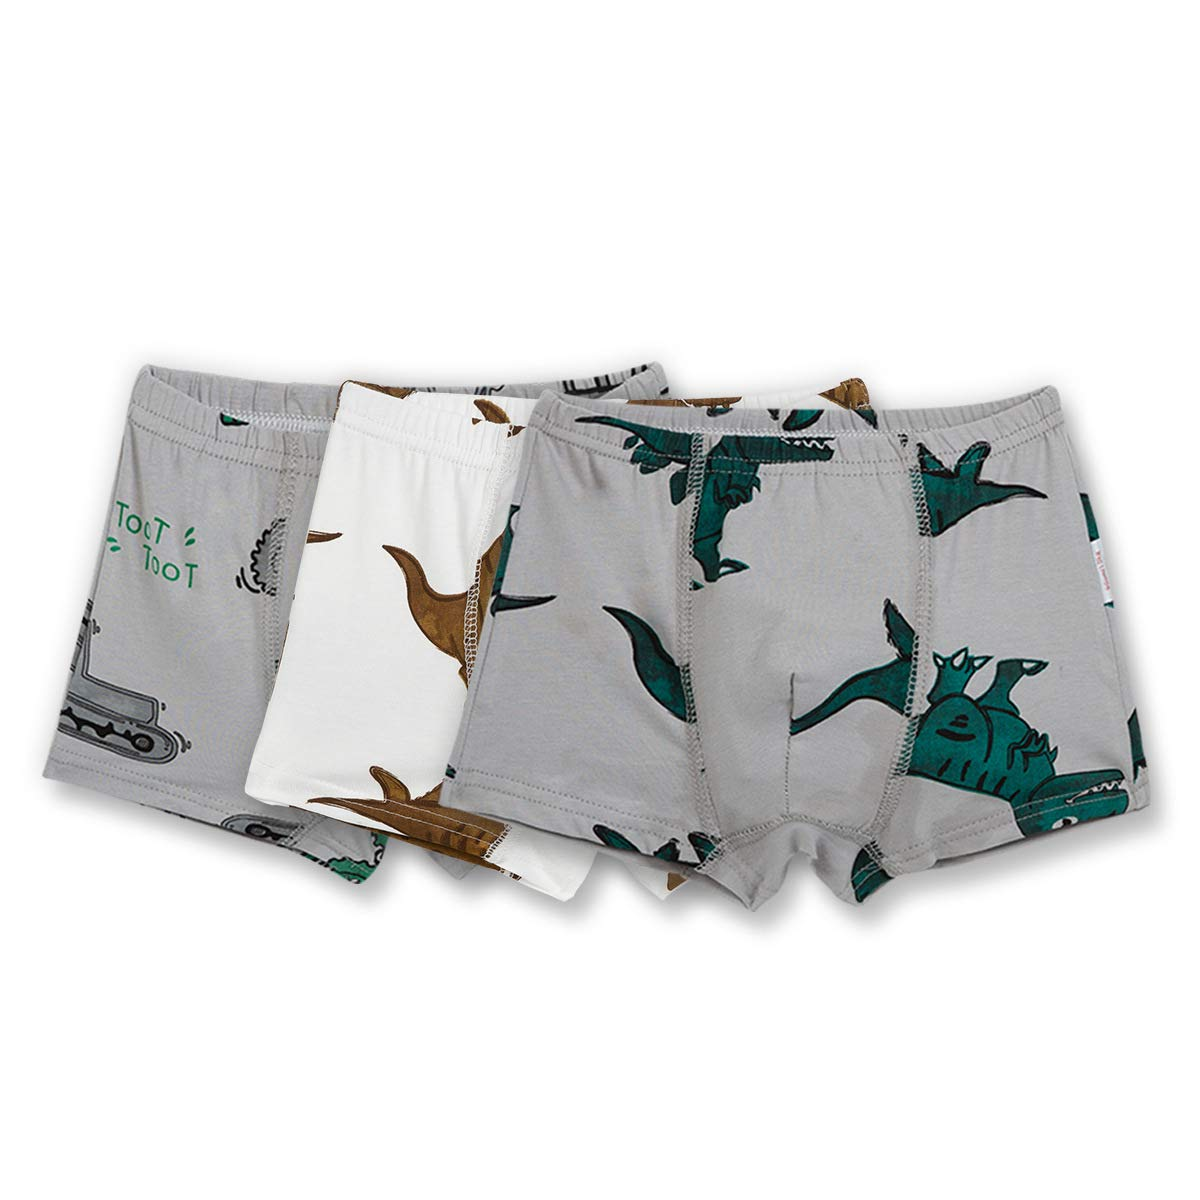 Cczmfeas Boys Underwear Dinosaur Kids Boxer Briefs Cotton Underpants 3 Pack